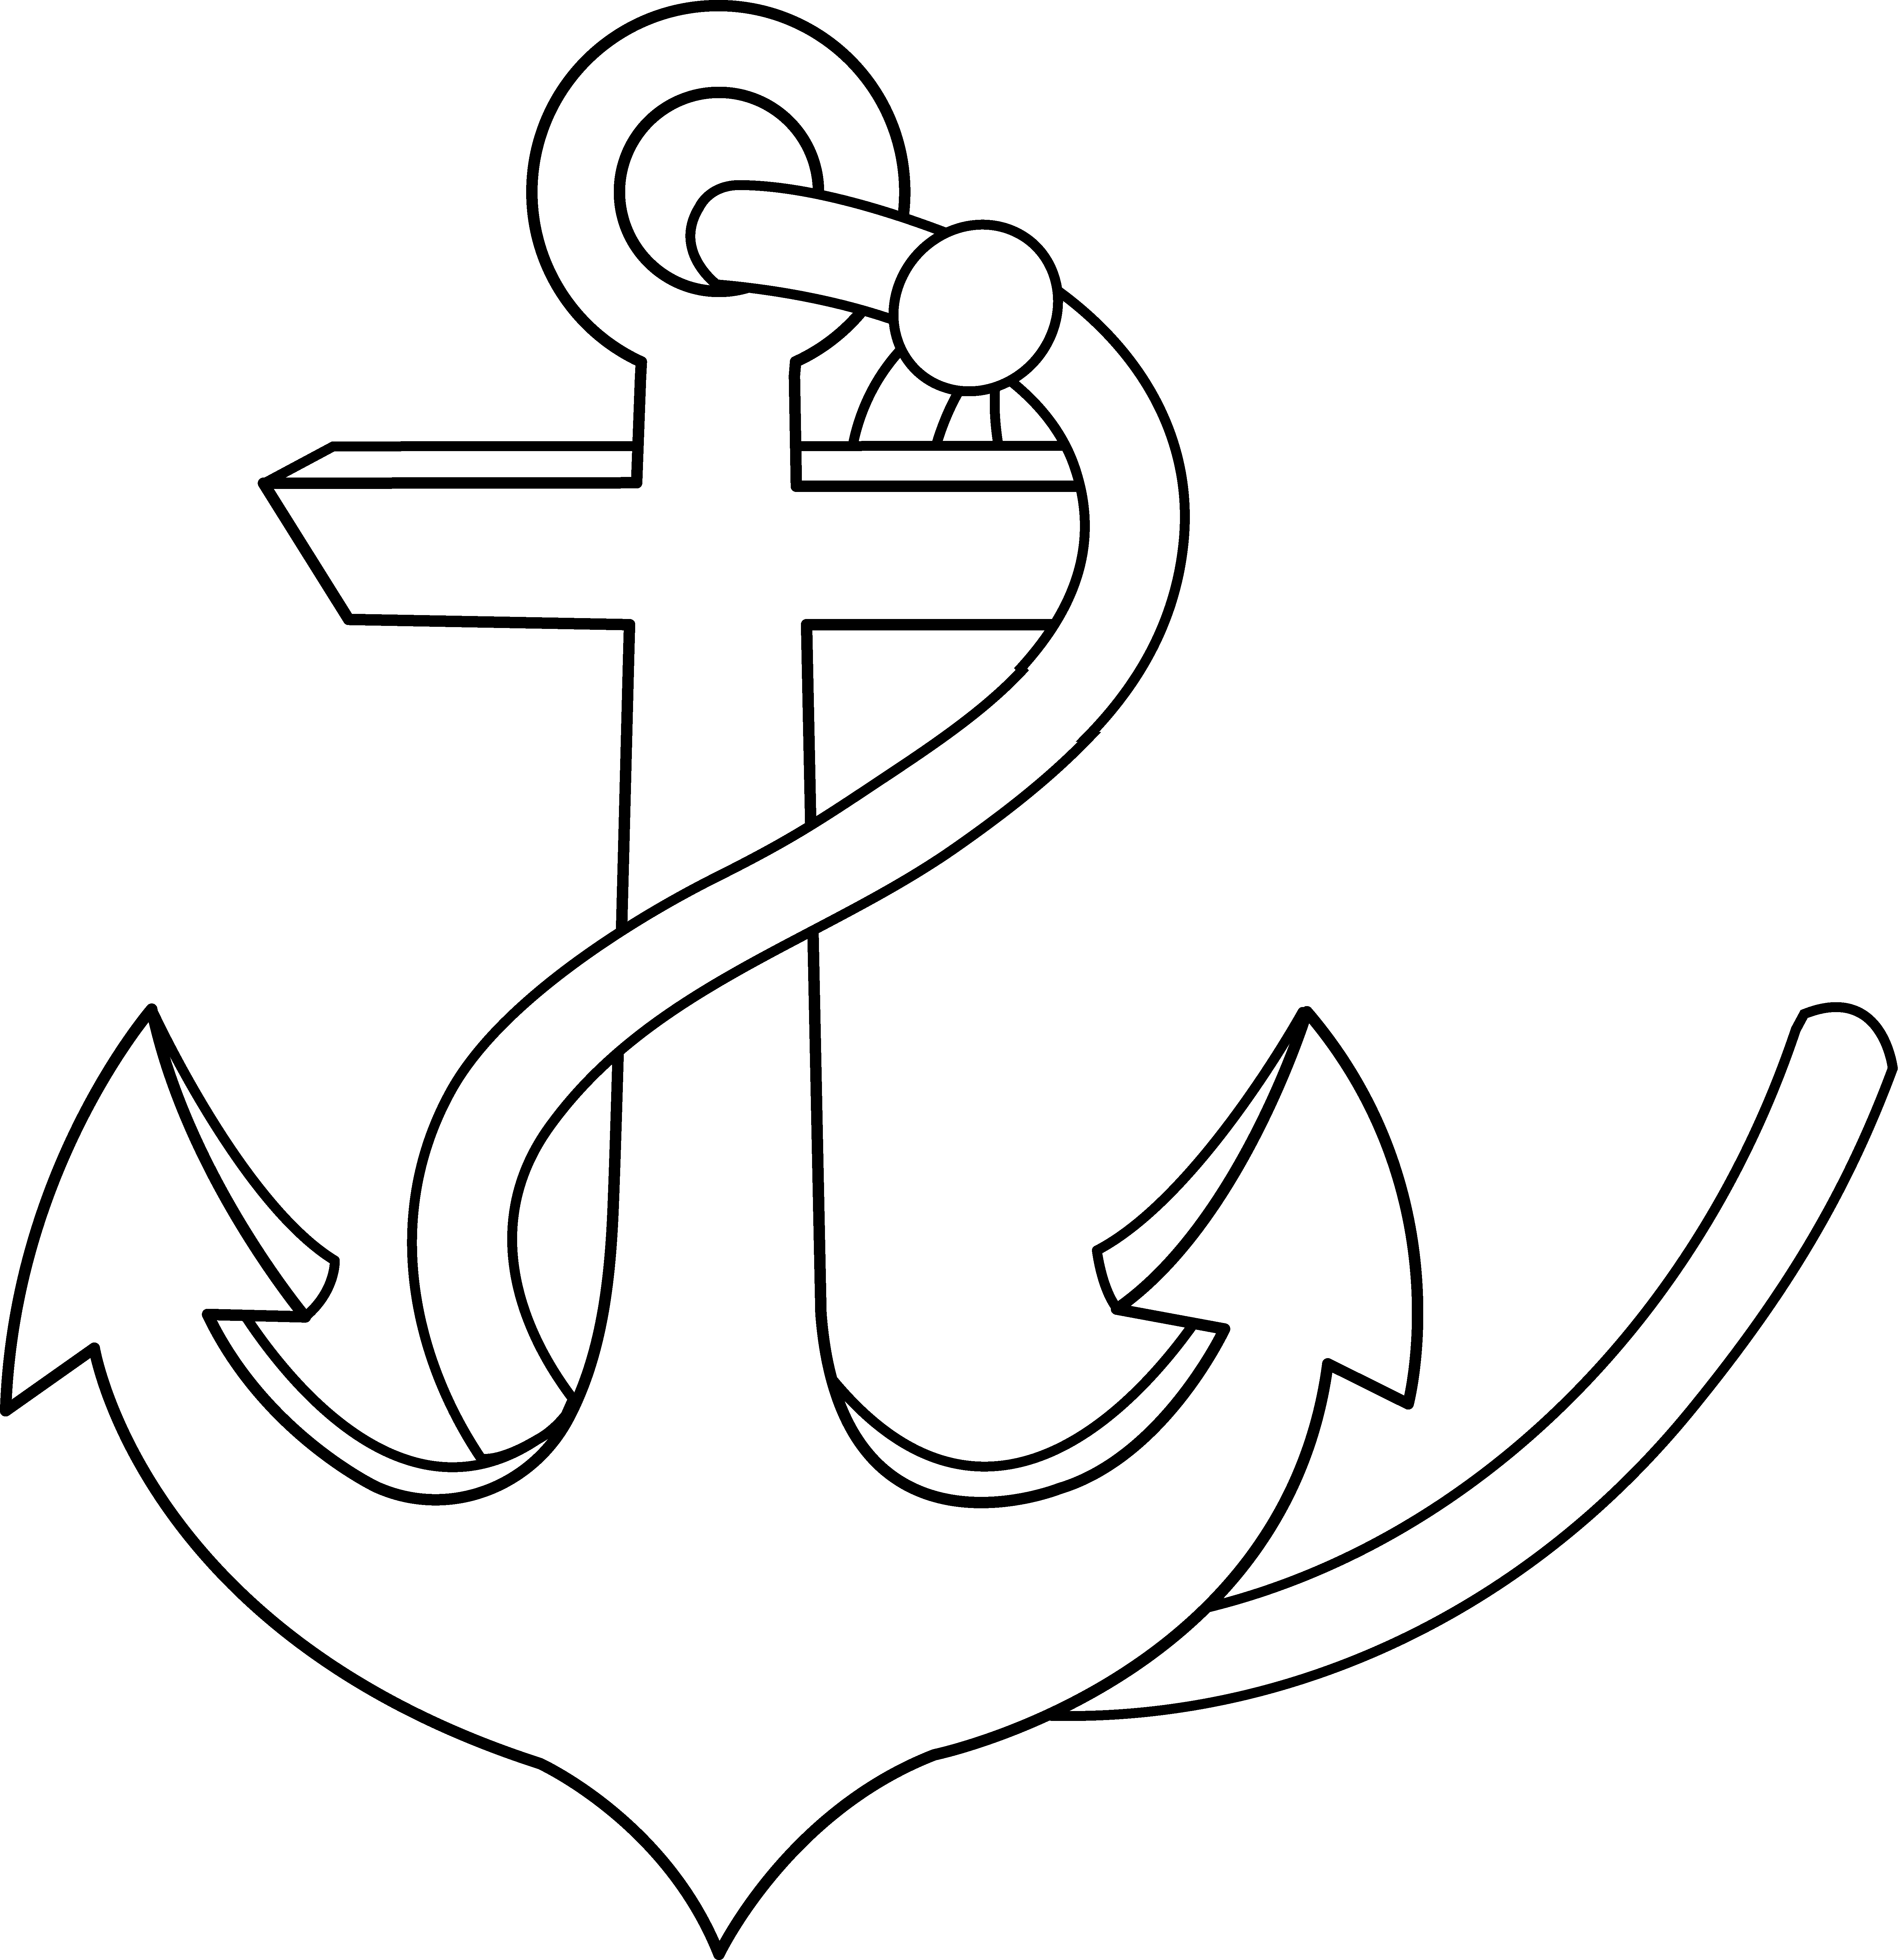 Clipart anchor outline. Line art free clip